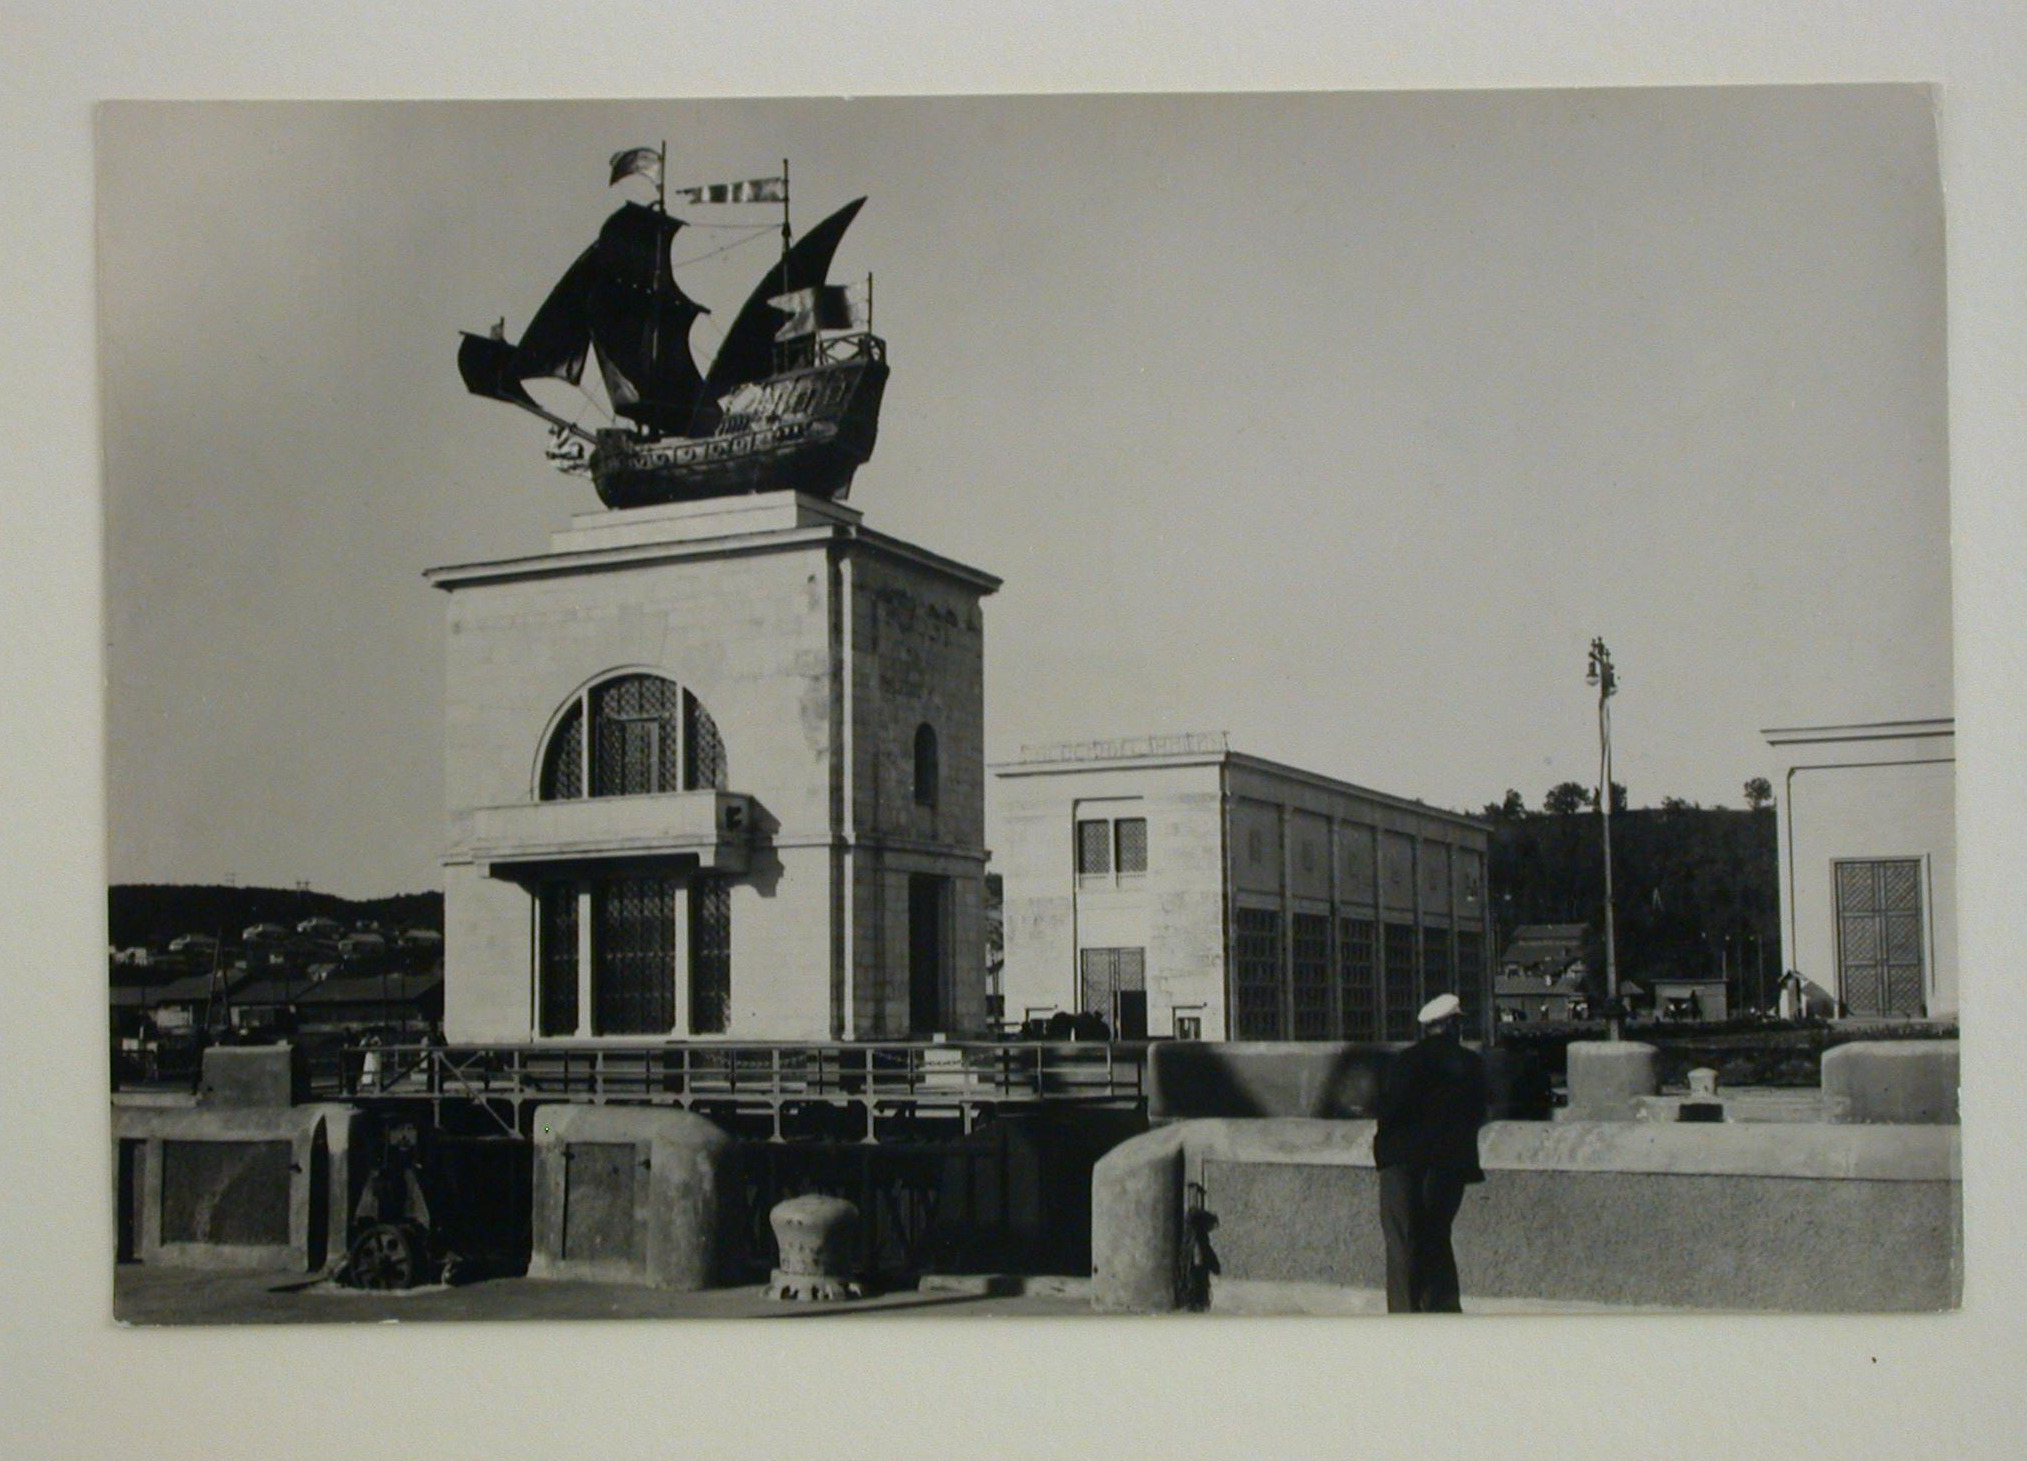 Meyer, Hannes Exterior view of the Moscow-Volga Canal Pumping-station with a modern building surmounted by a replica of a sailing ship in the foreground, Moscow, 1937-1954